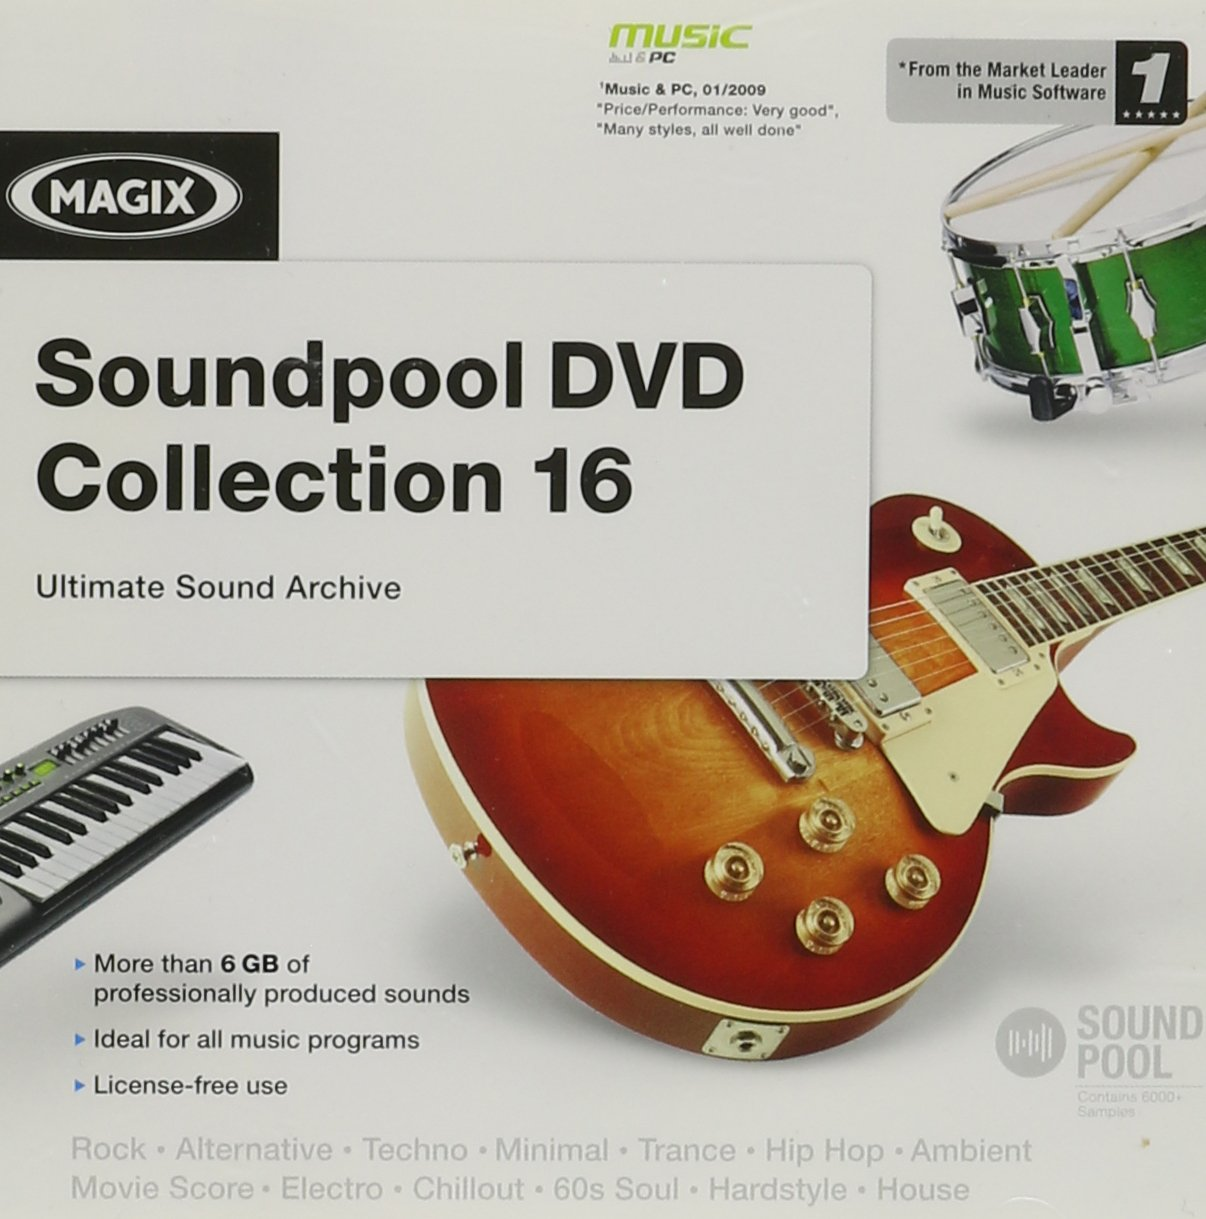 MAGIX Soundpool DVD Collection 16